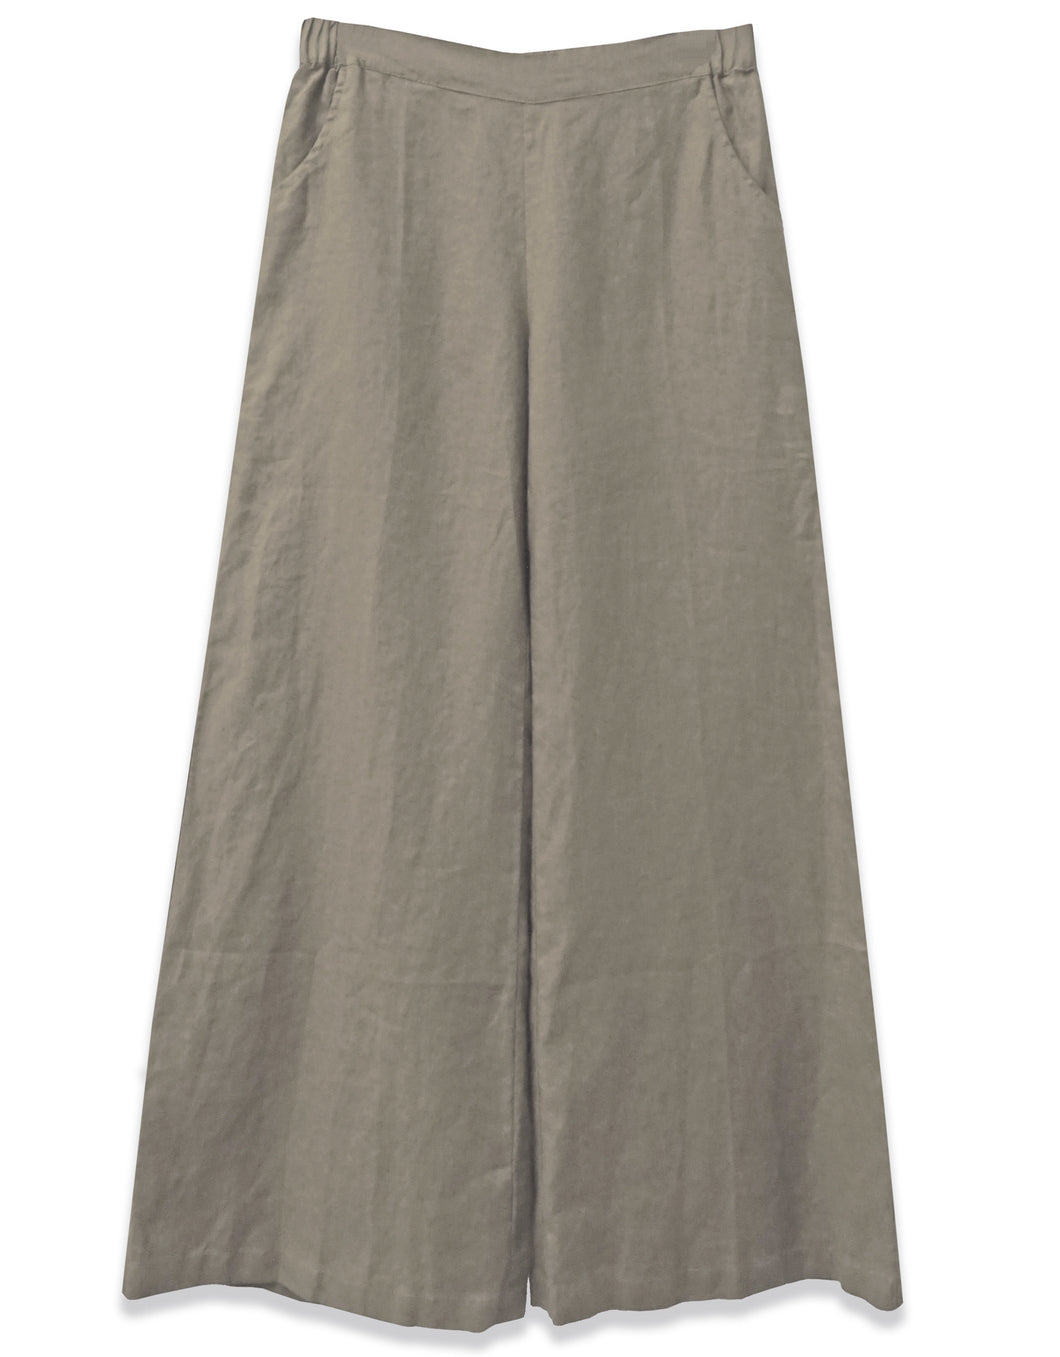 Linen Wide Leg Pant | Olive - 4OUR Dreamers